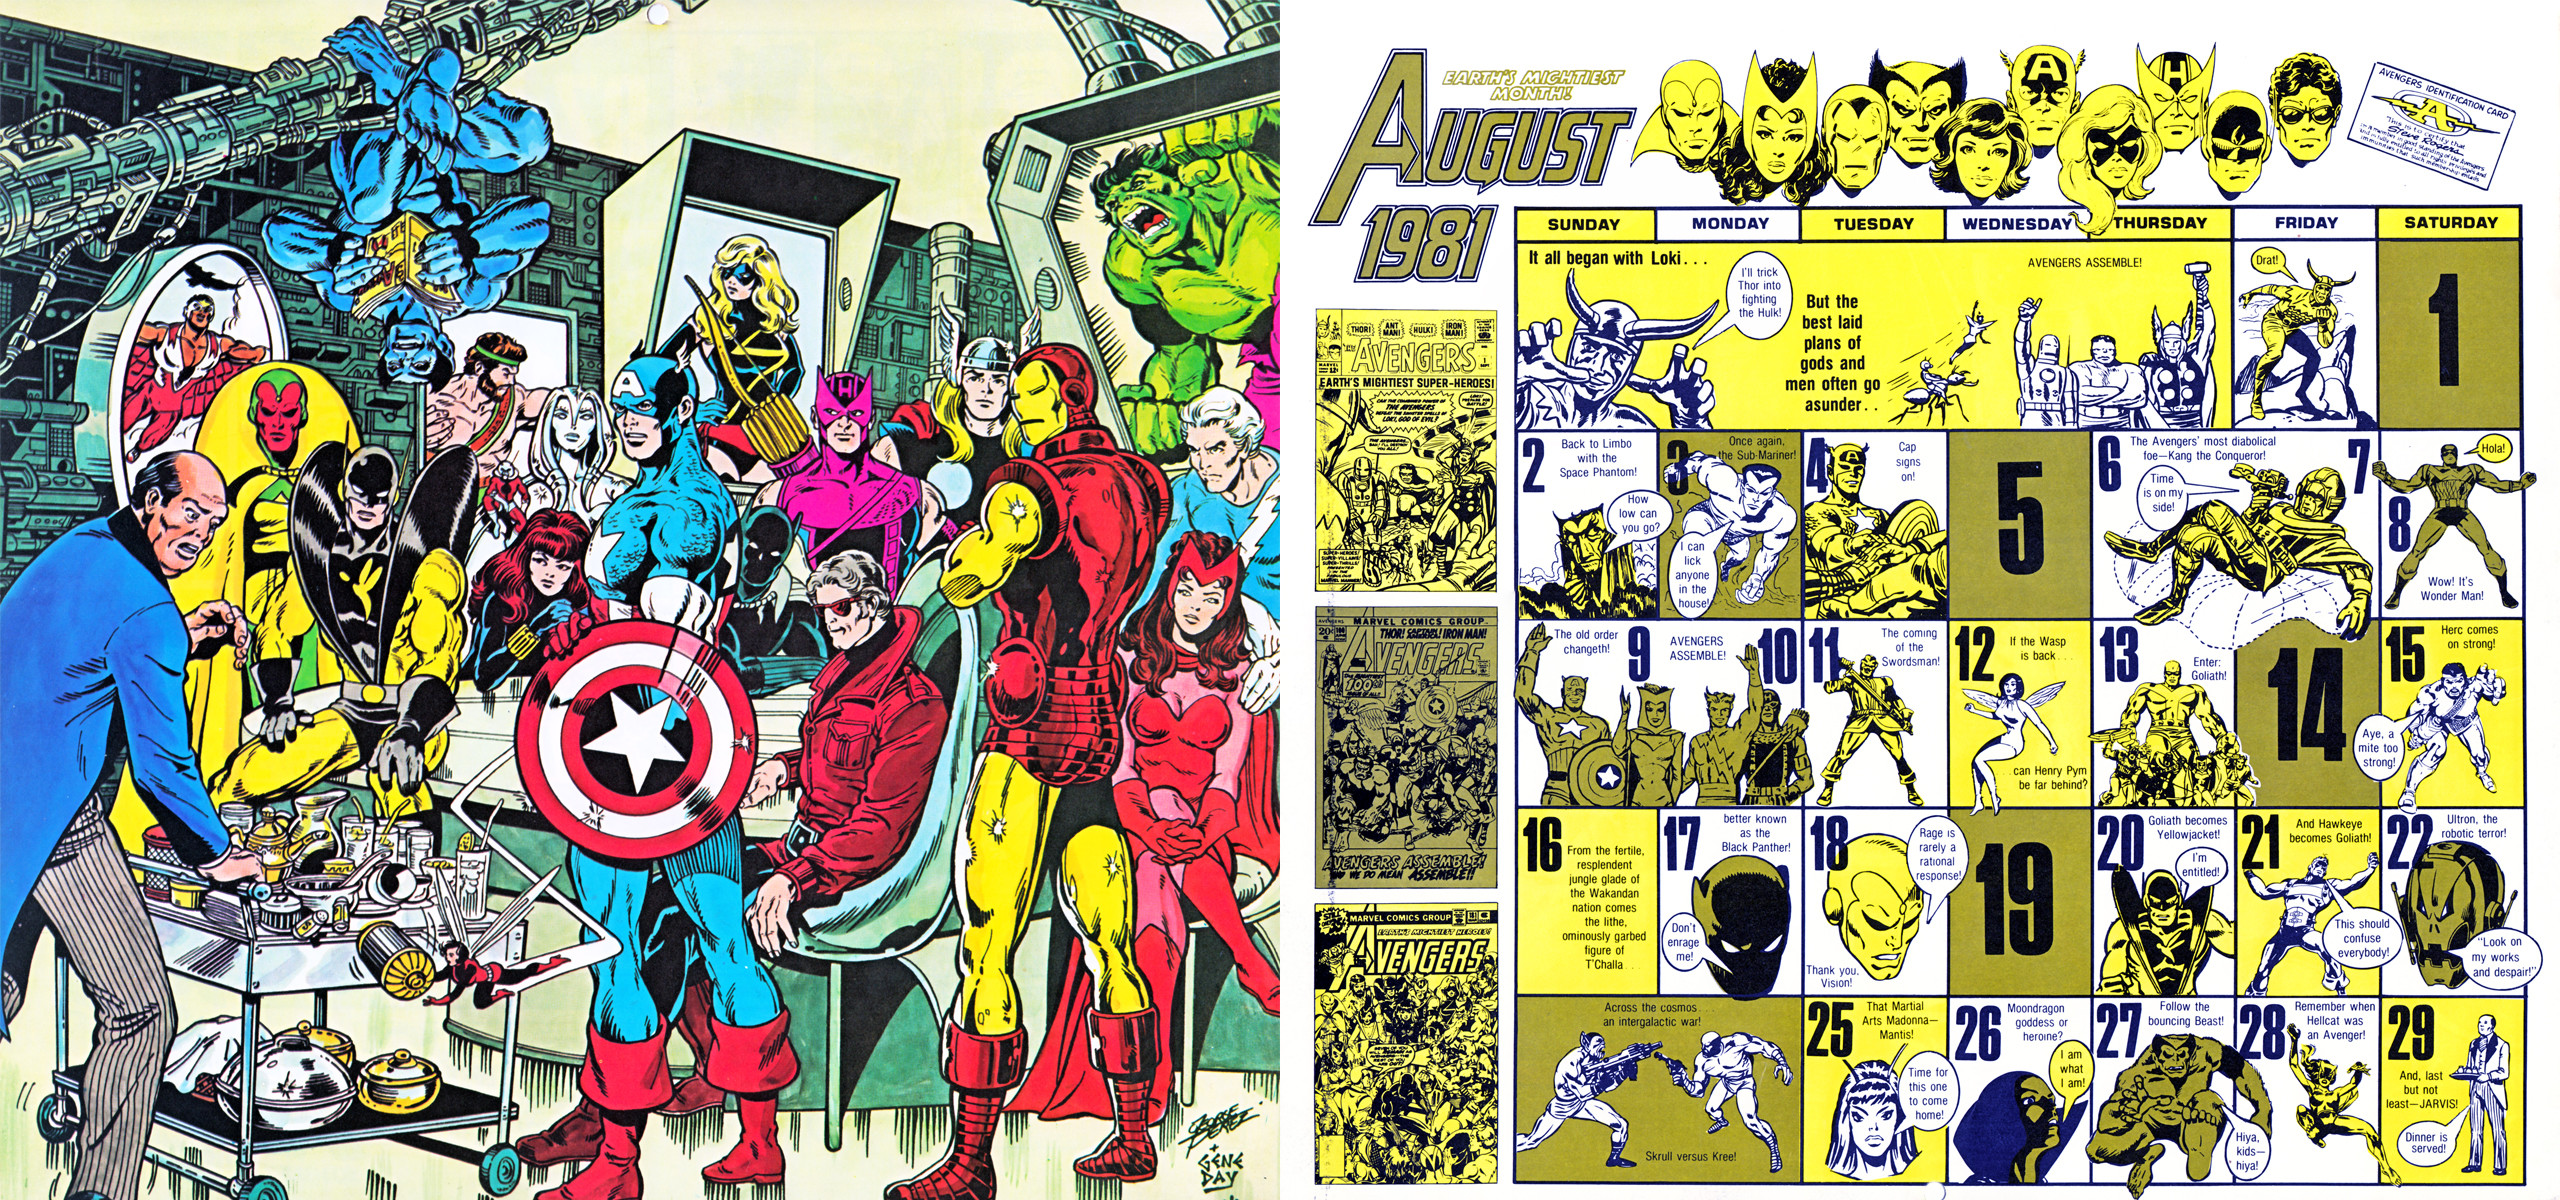 Res: 2560x1200, 1981/2015 Marvel Comics Calendar - August